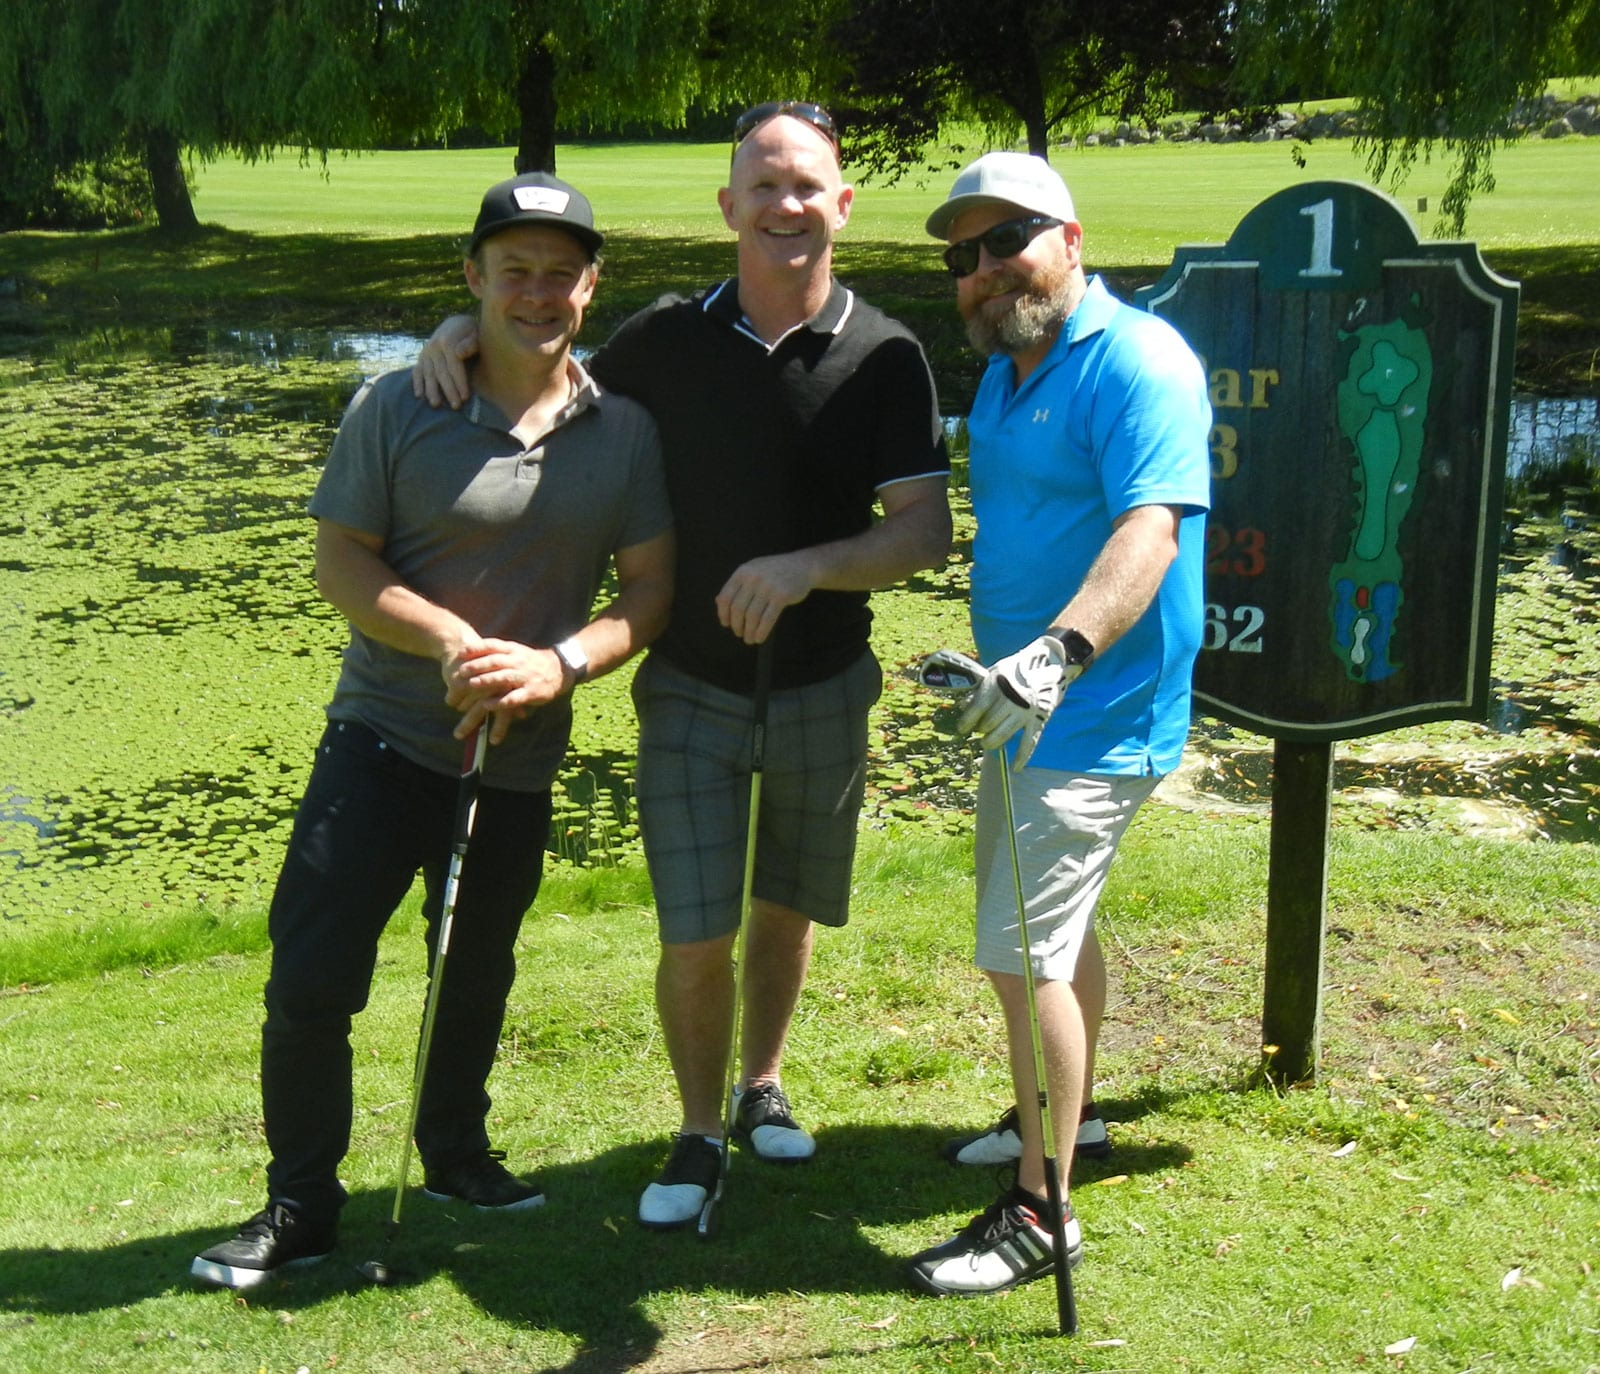 Team building playing golf